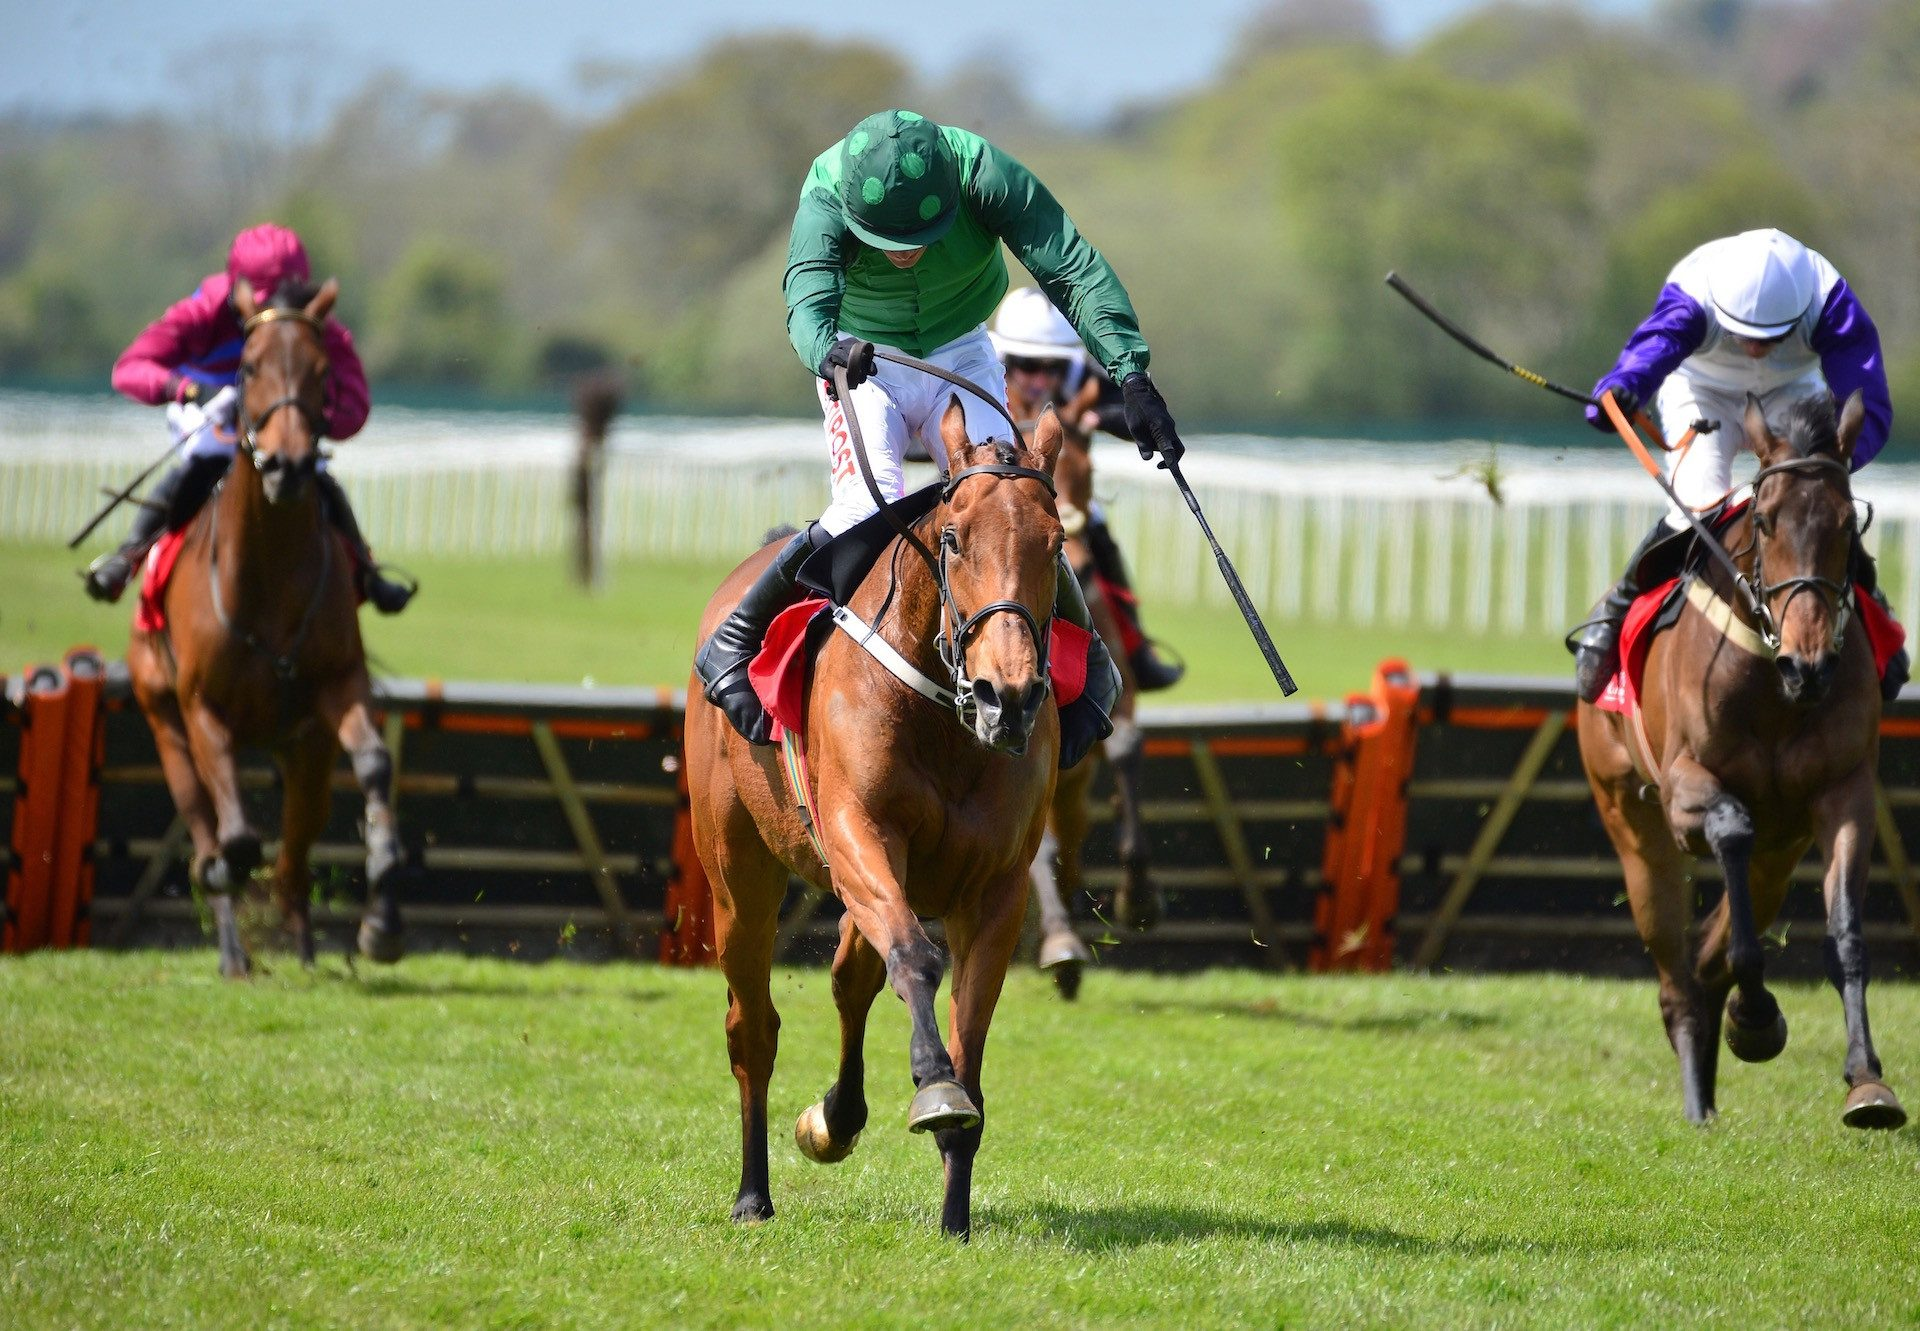 Manitopark AA (Walk In The Park) Wins The Mares Maiden Hurdle At Cork